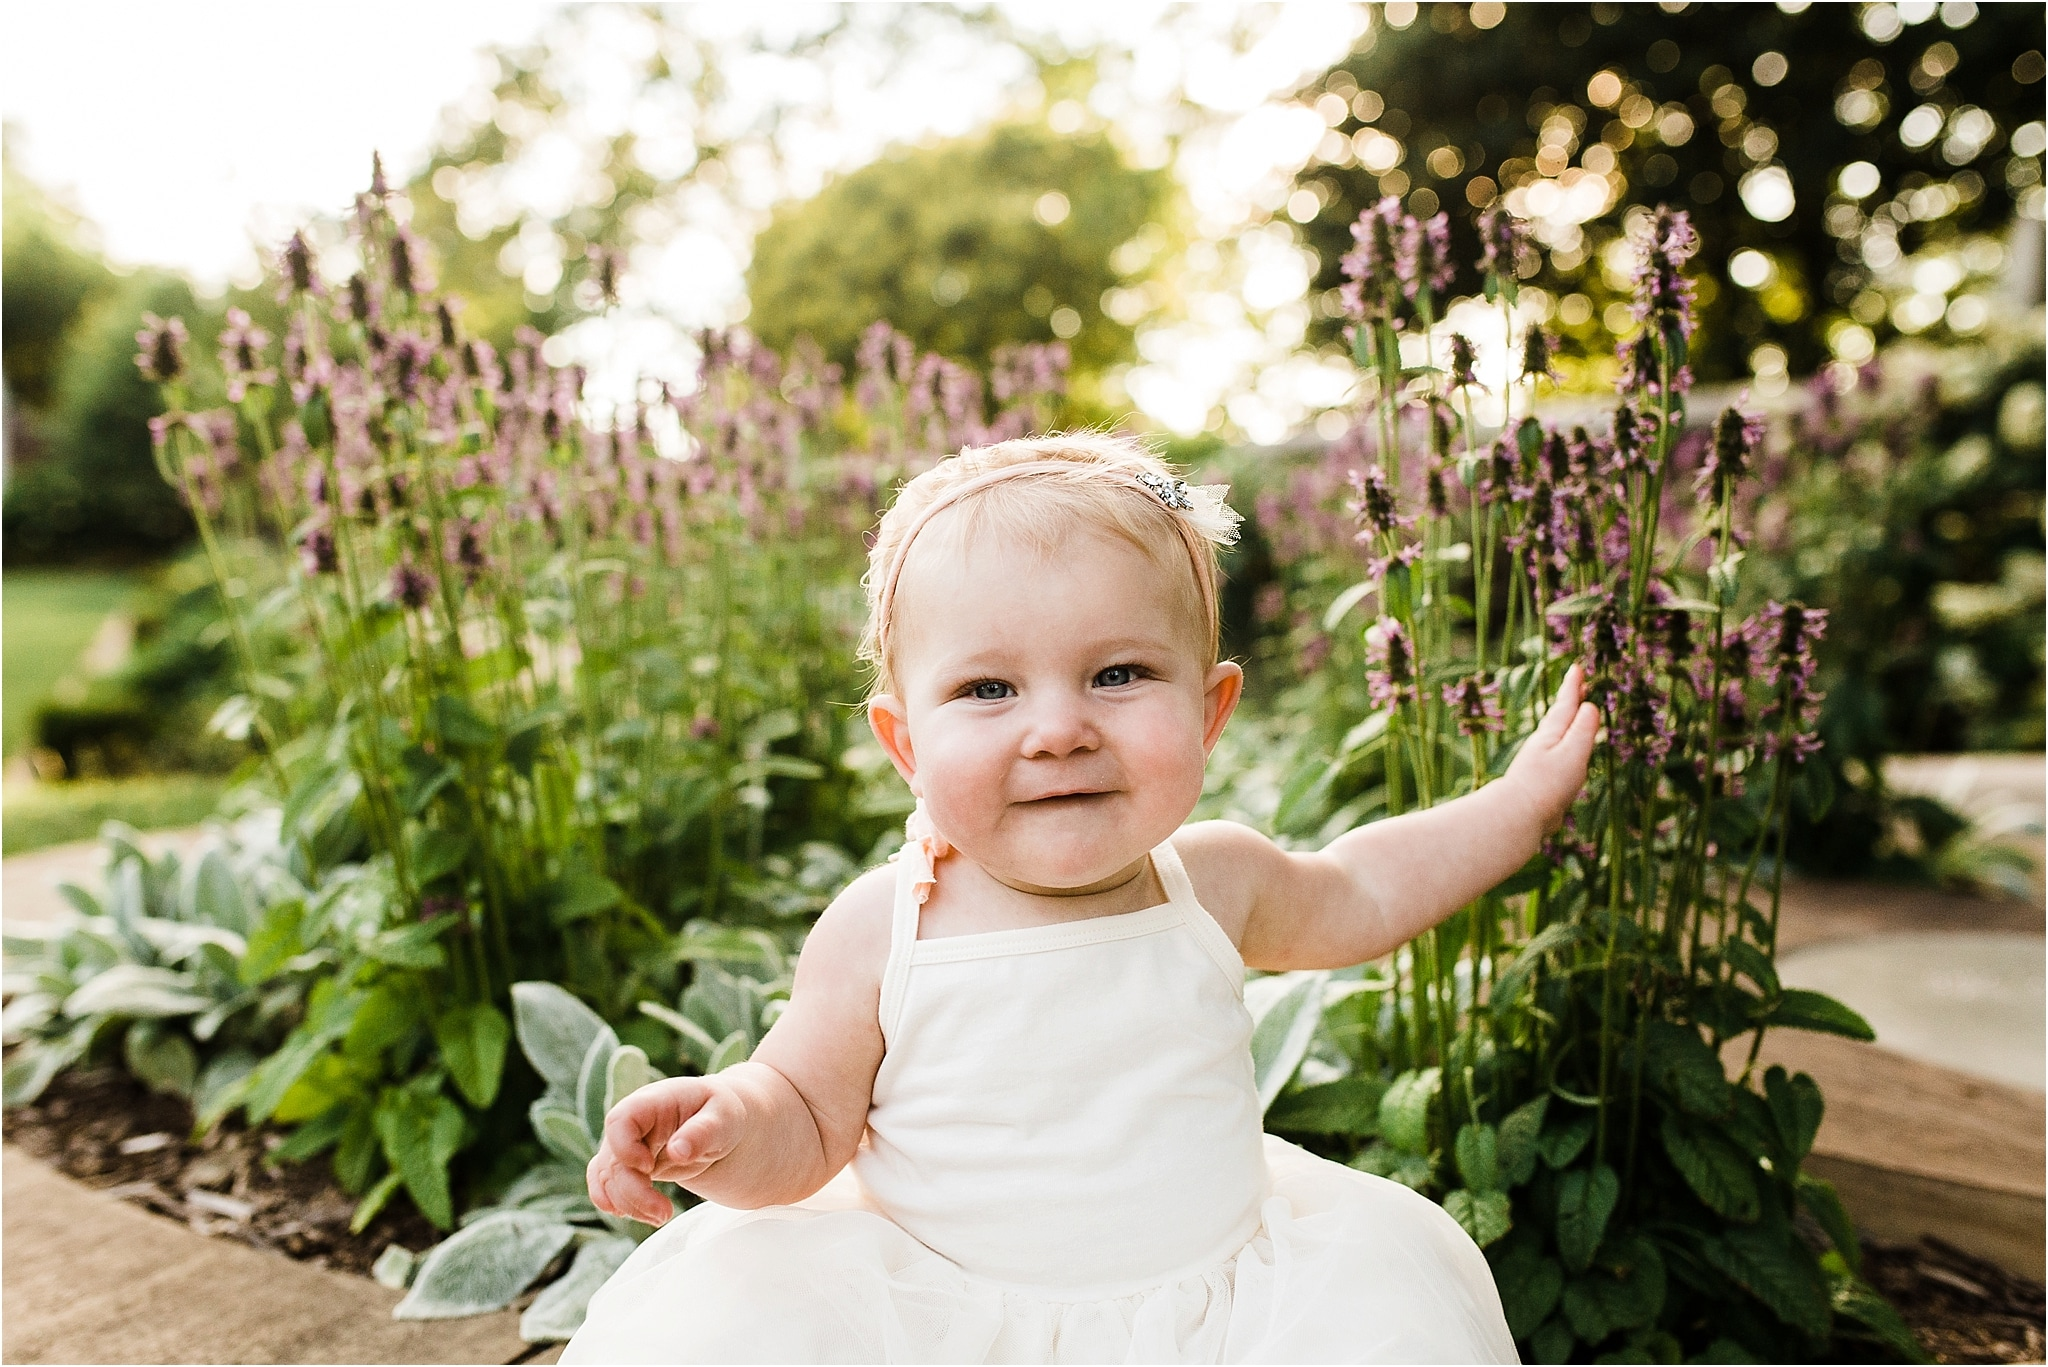 one year old baby girl photo in flowers